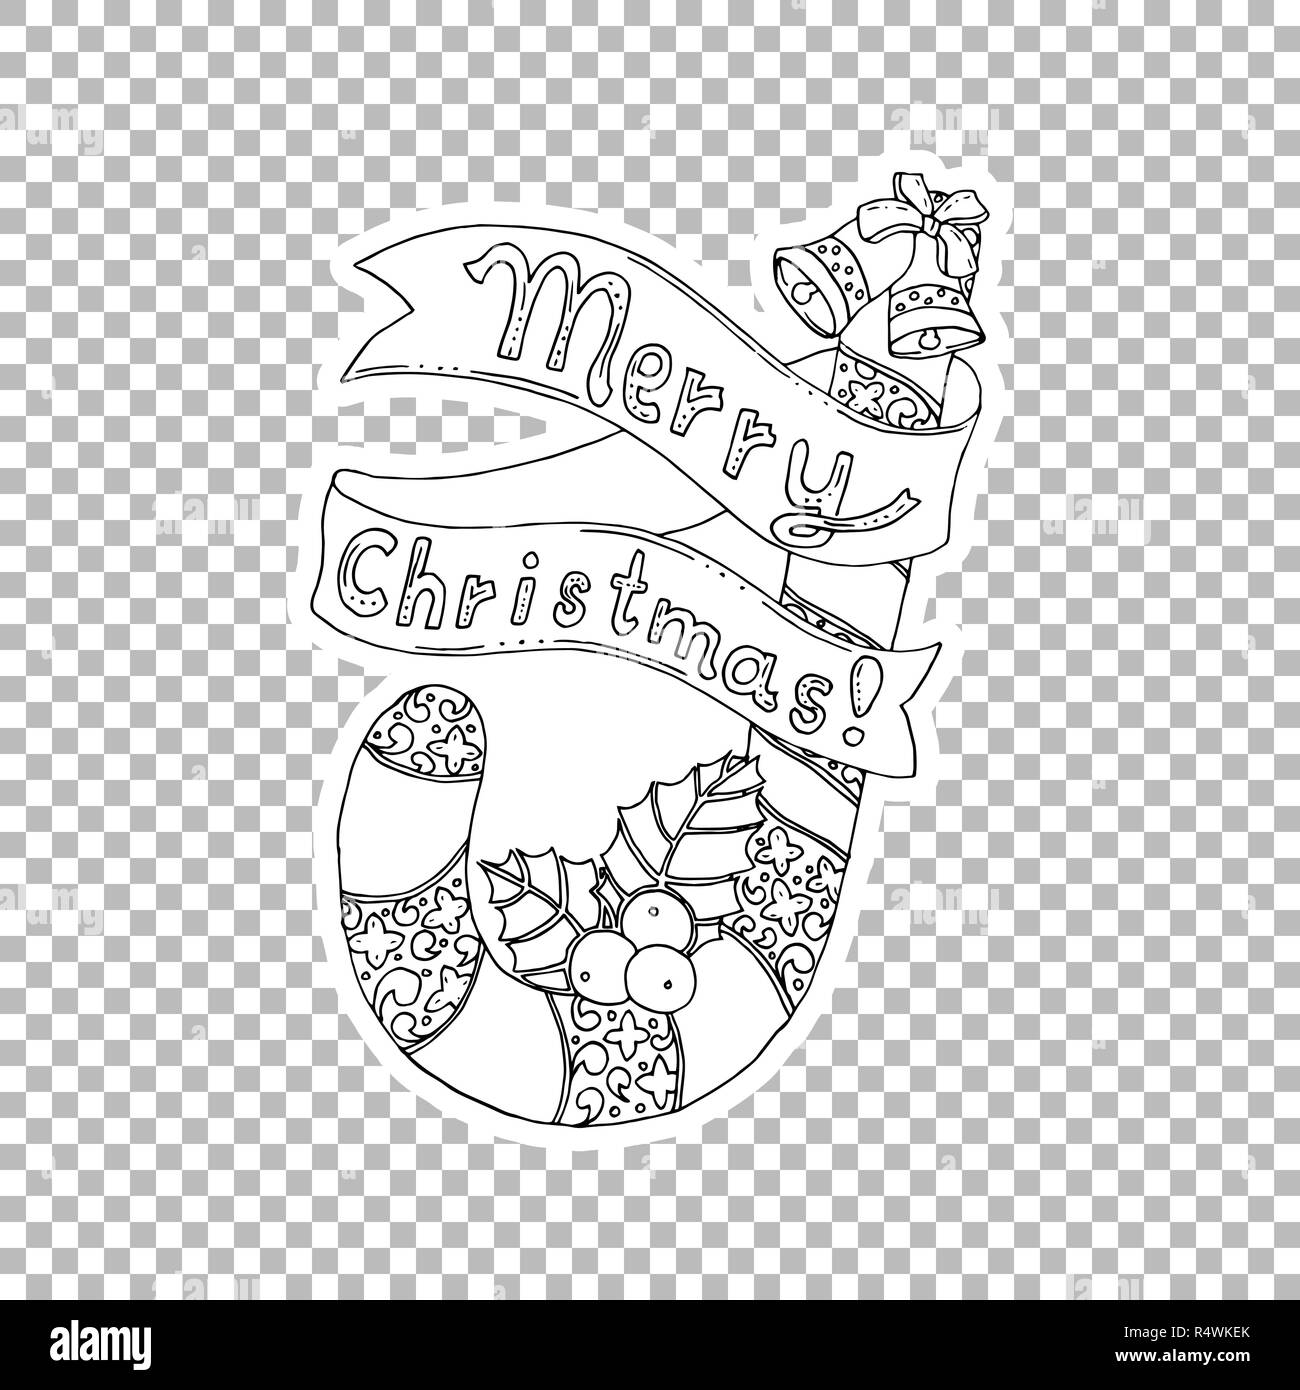 Christmas Drawing Black And White Stock Photos Amp Images